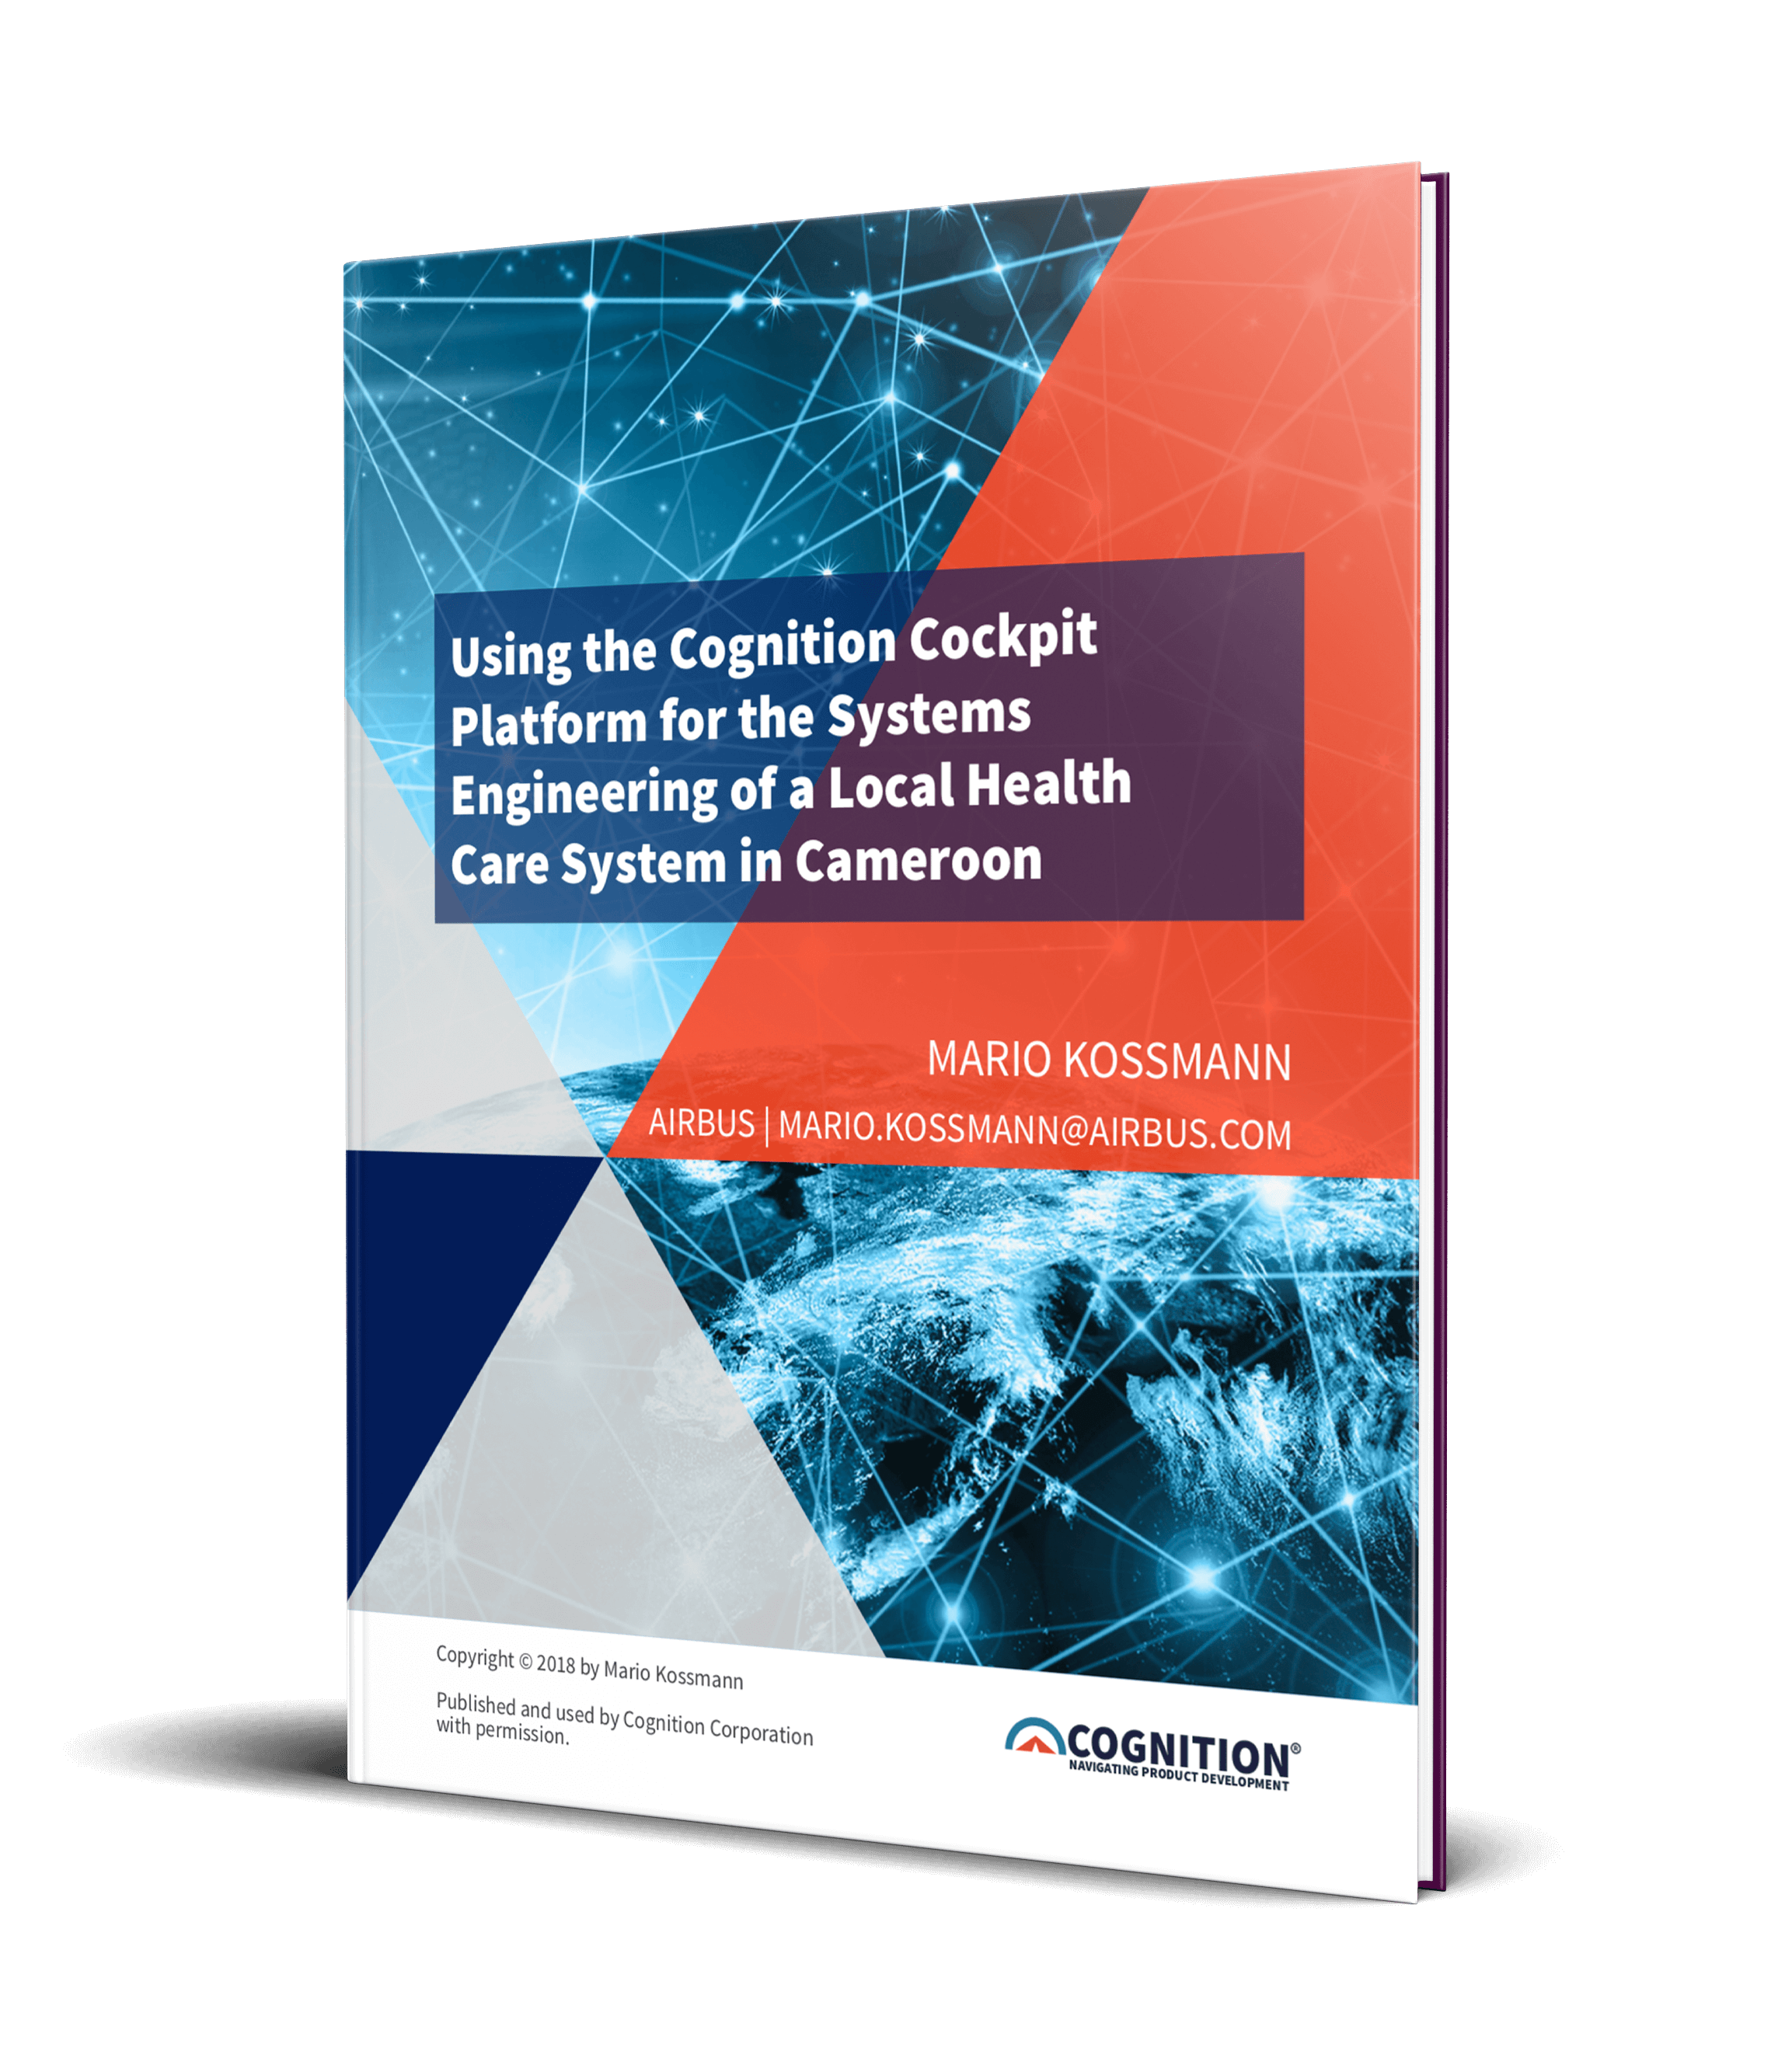 Using the Cognition Cockpit Platform for the Systems Engineering of a Local Health Care System in Cameroon, a Case Study